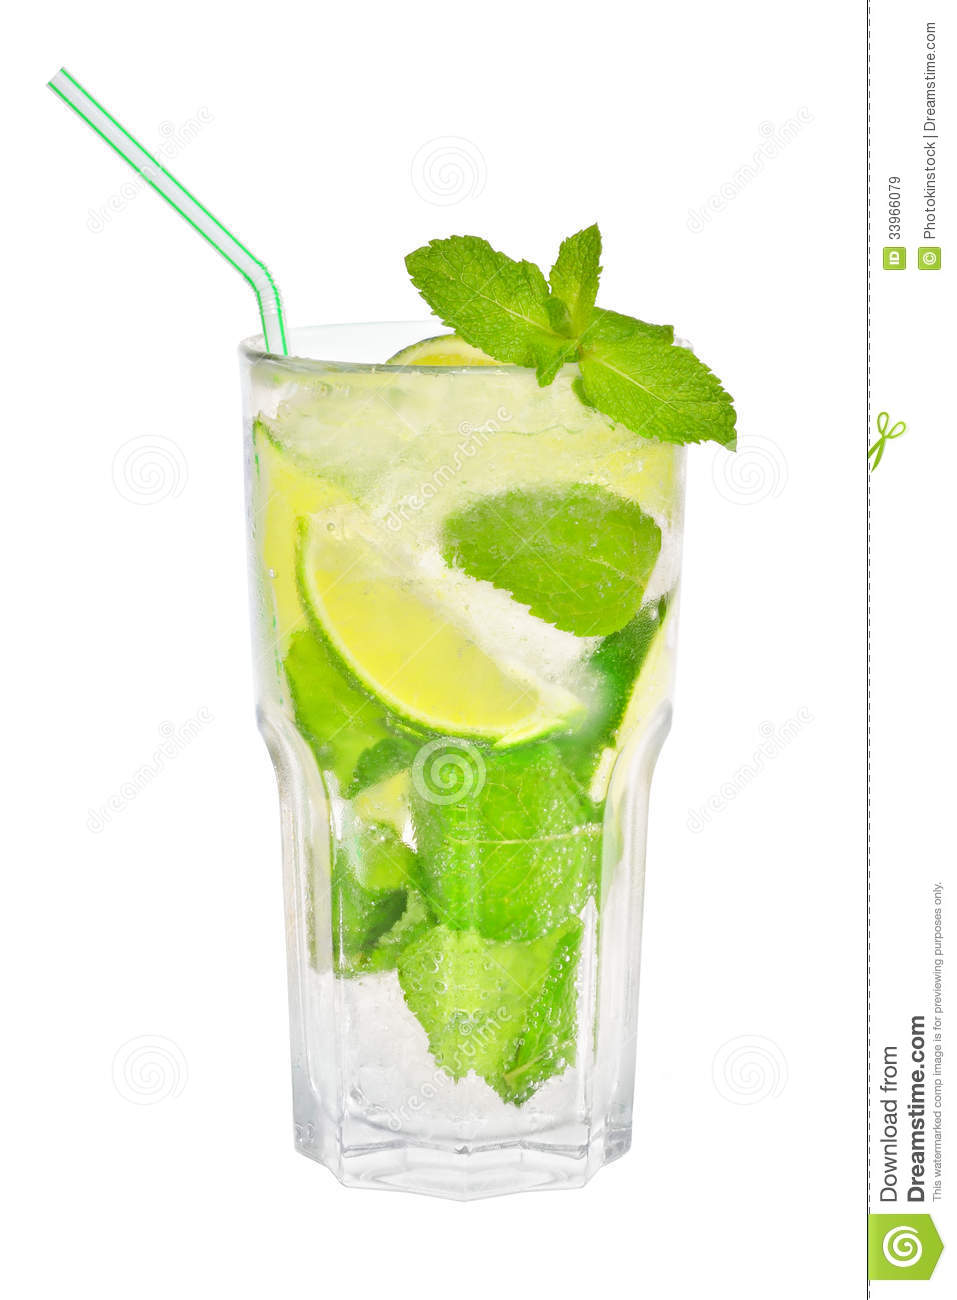 mojito cocktail in a tall glass royalty free stock images. Black Bedroom Furniture Sets. Home Design Ideas